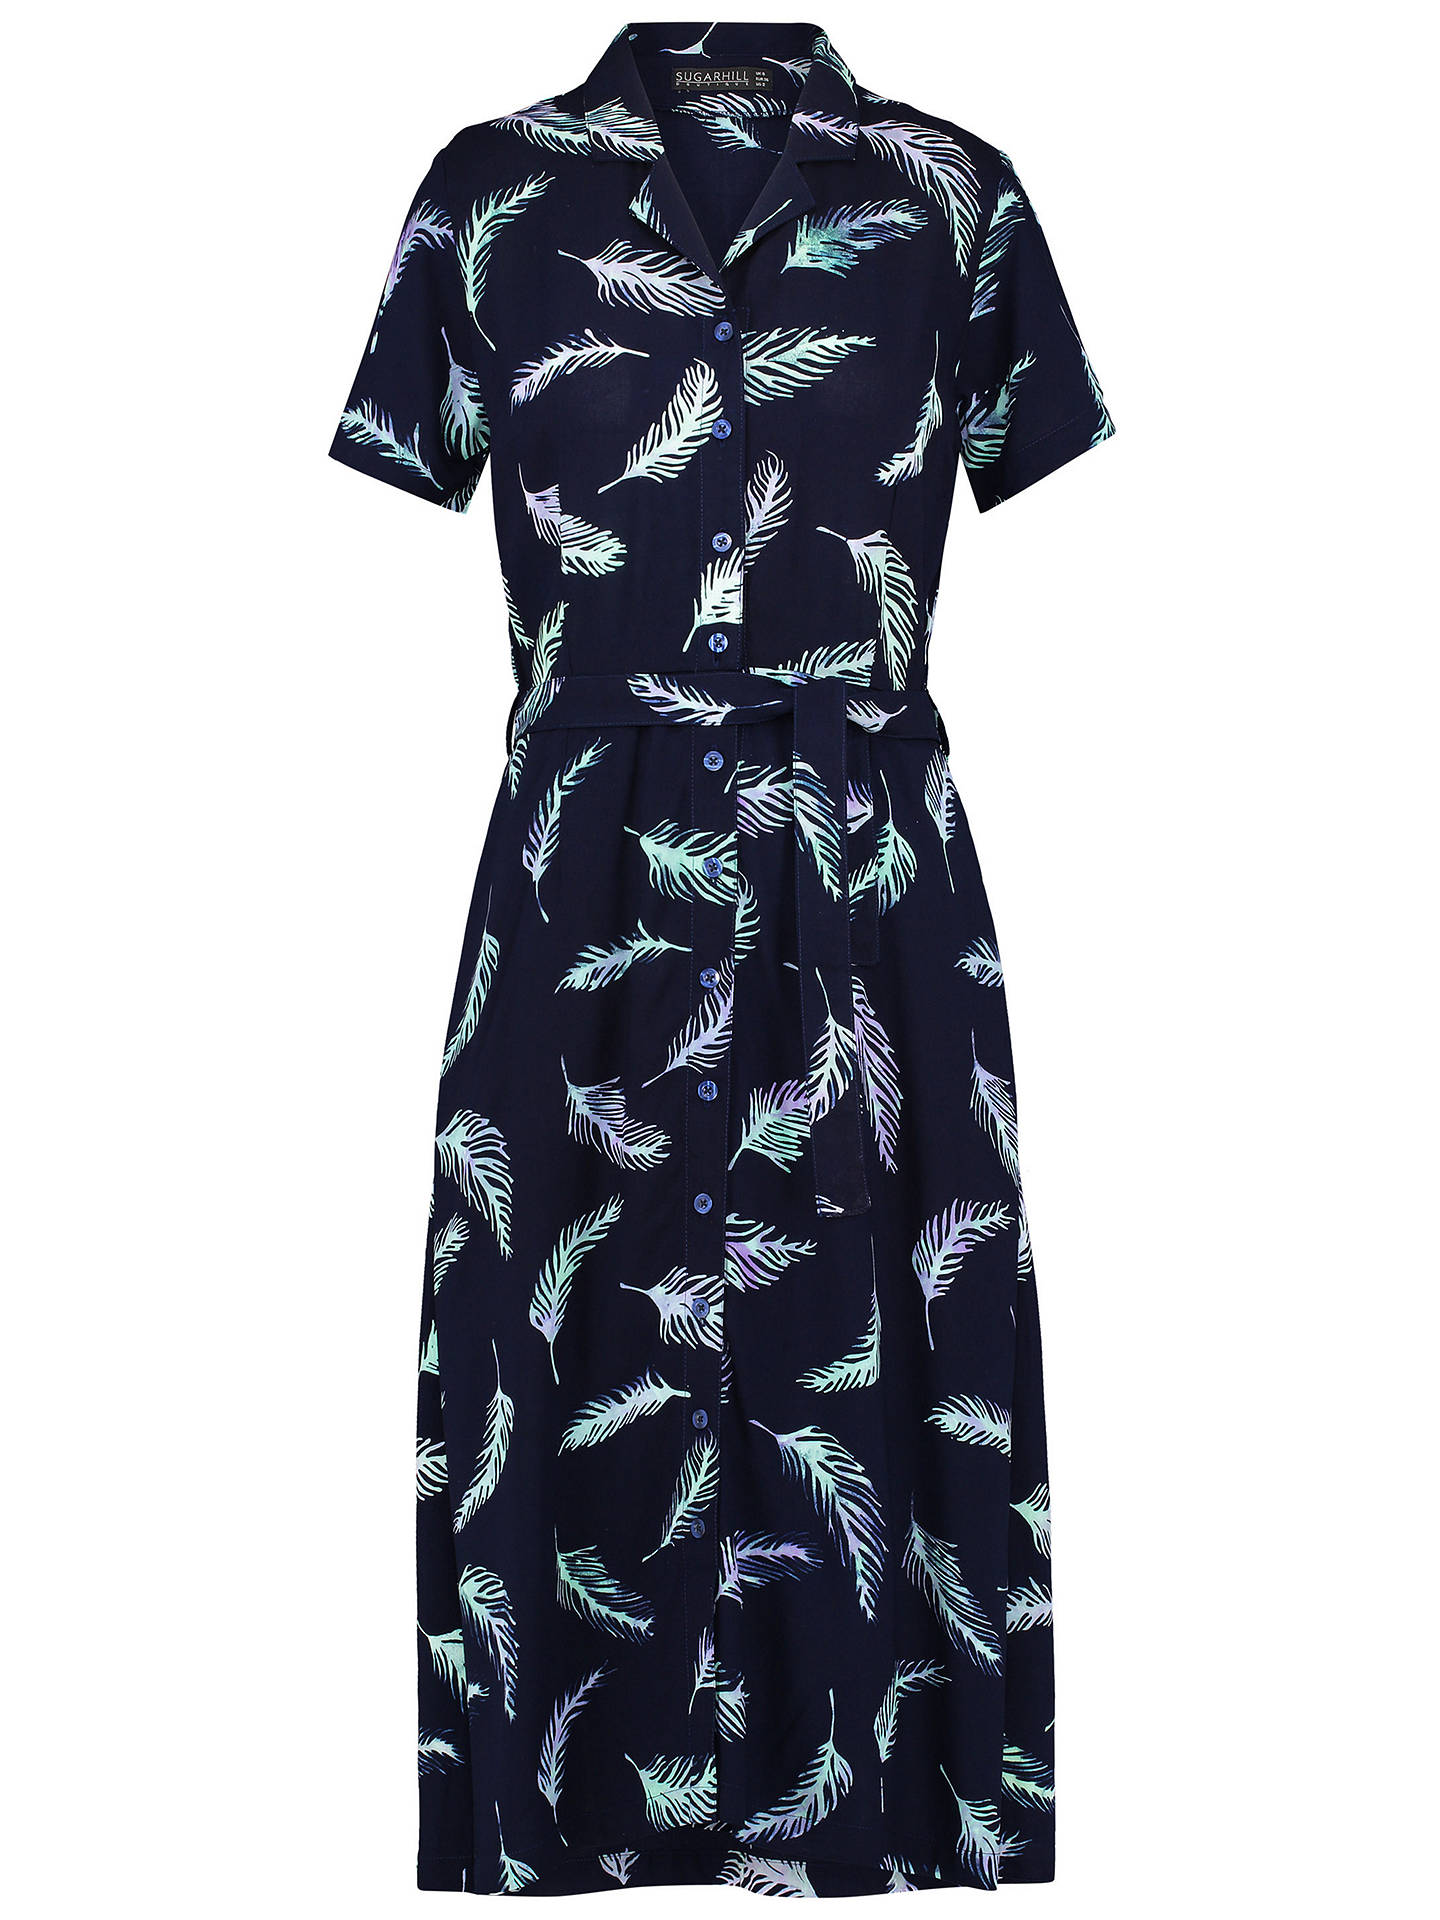 BuySugarhill Brighton Batik Kendra Shirt Dress, Navy/Lilac, 16 Online at johnlewis.com